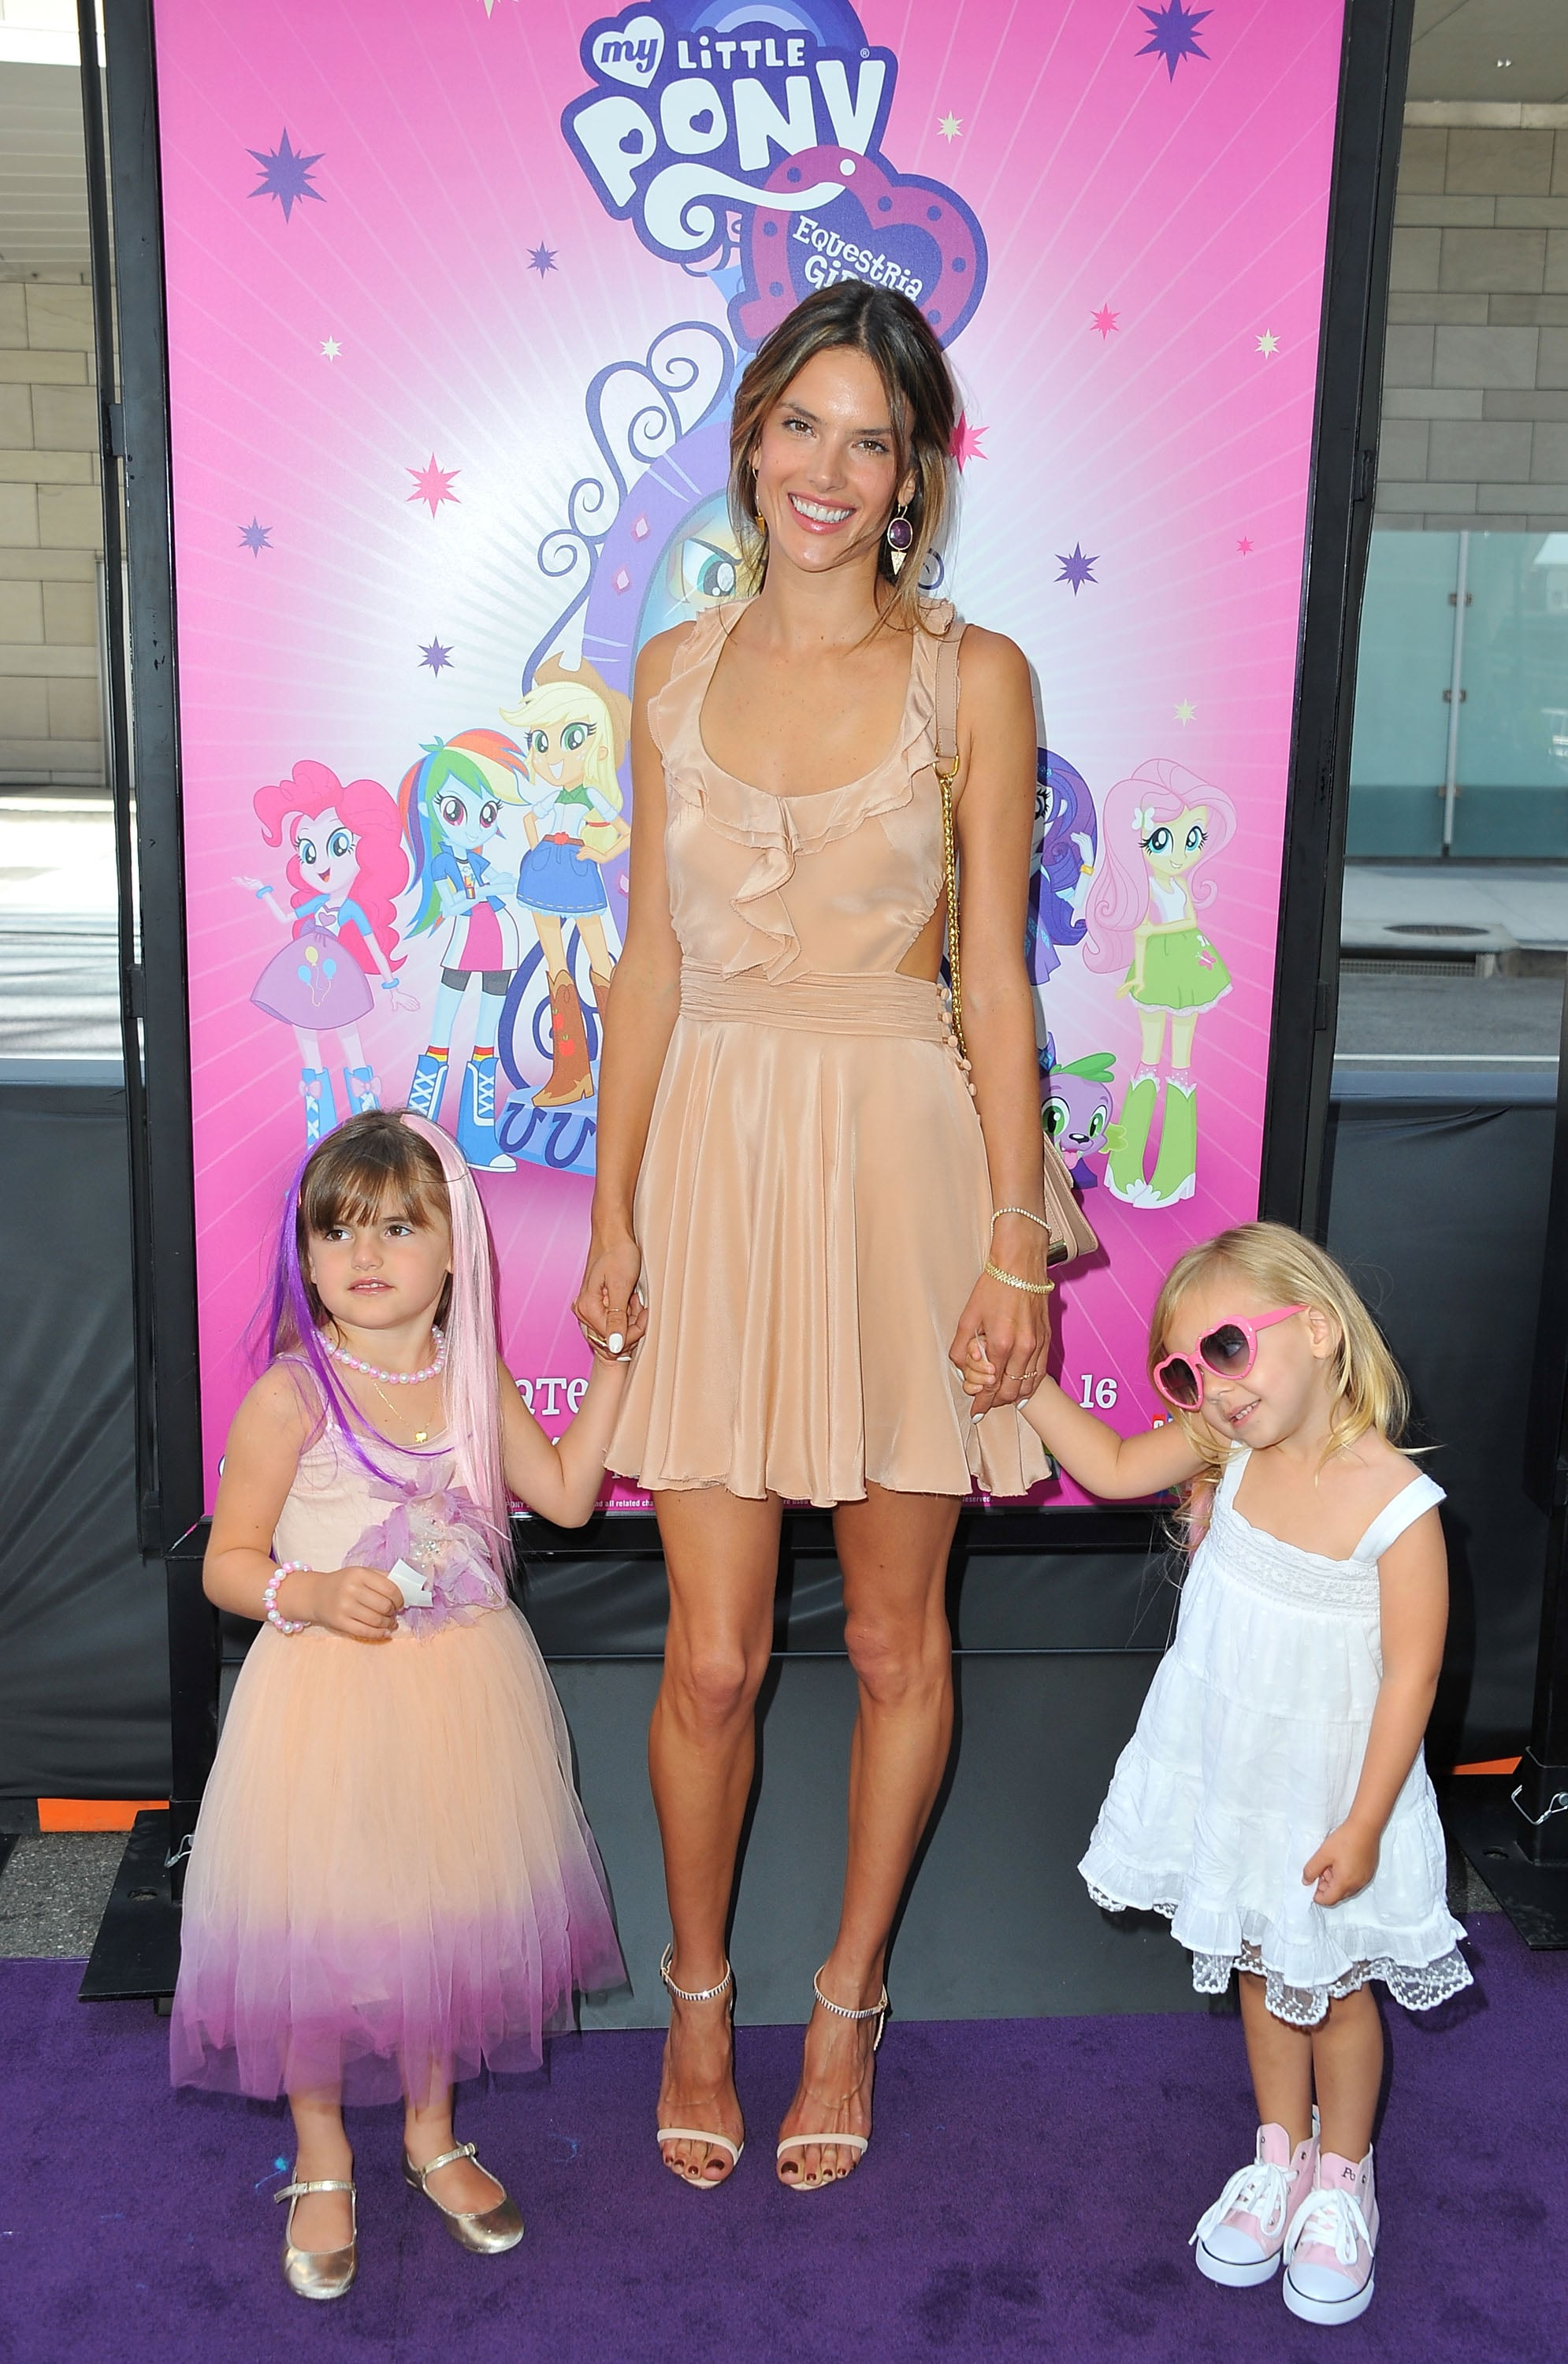 Alessandra Ambrosio brought her daughter, Anja, and a friend to the premiere of My Little Pony: Equestria Girls.